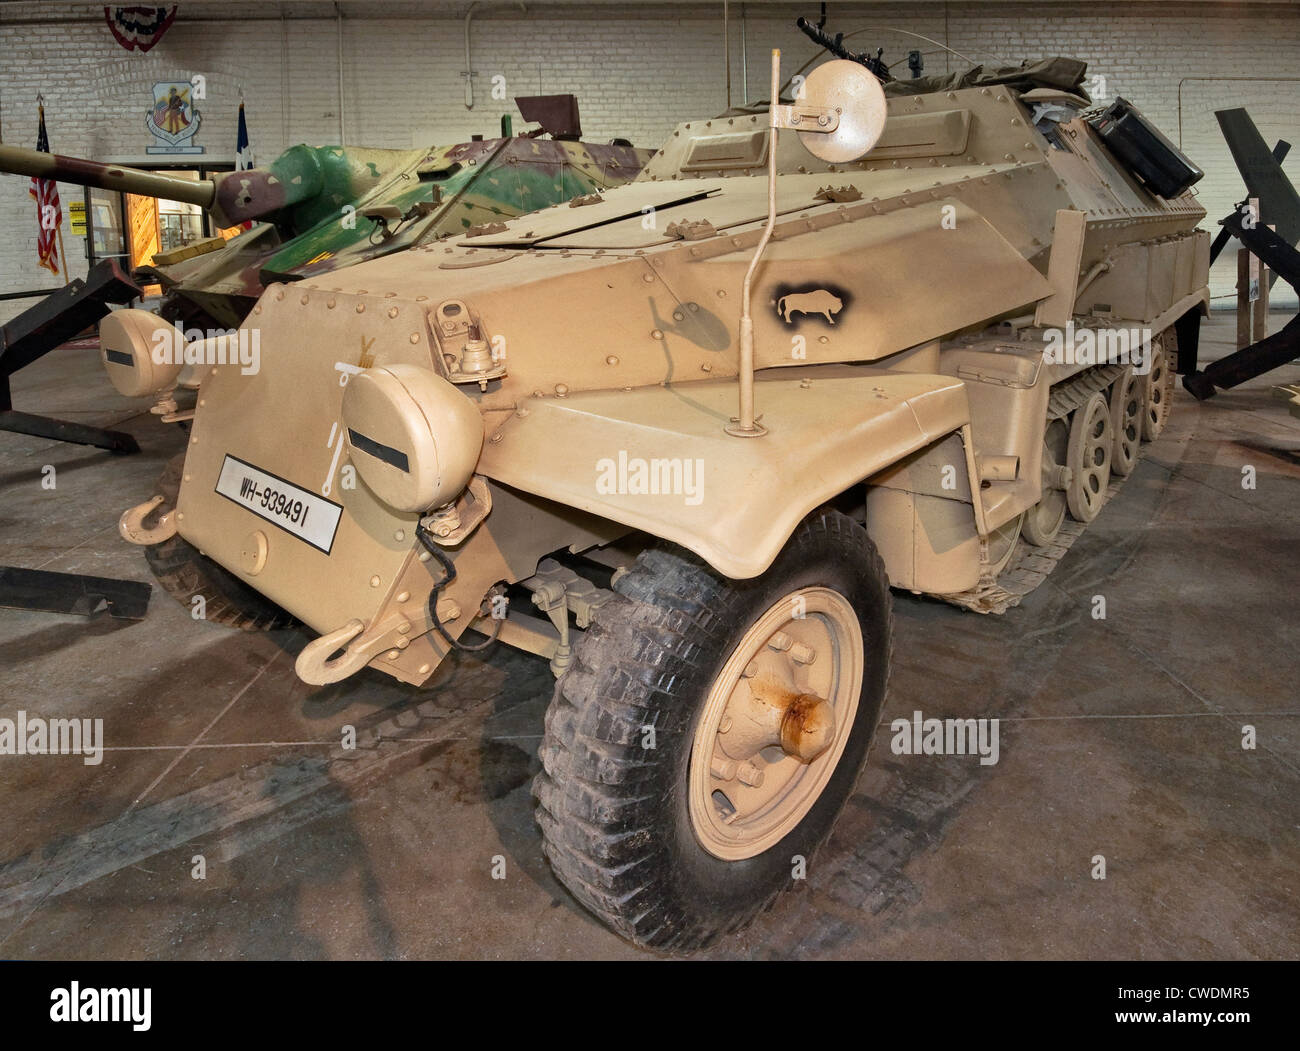 WW2 German SPW SdKfz 251 armored personnel carrier, Africa Corps markings, Texas Military Forces Museum at Camp - Stock Image